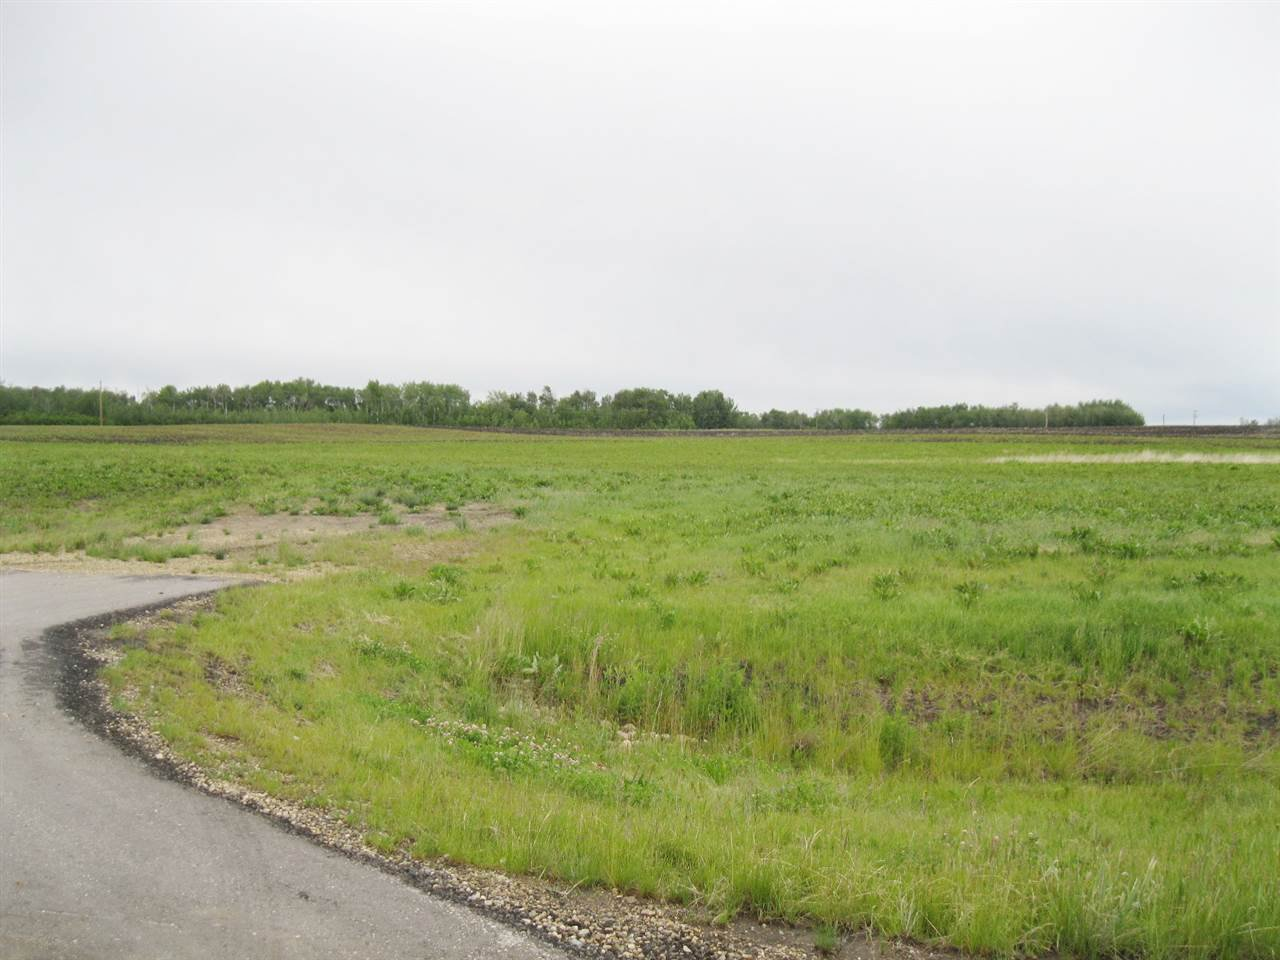 Main Photo: 12 52329 RGE RD 13: Rural Parkland County Rural Land/Vacant Lot for sale : MLS®# E4192971